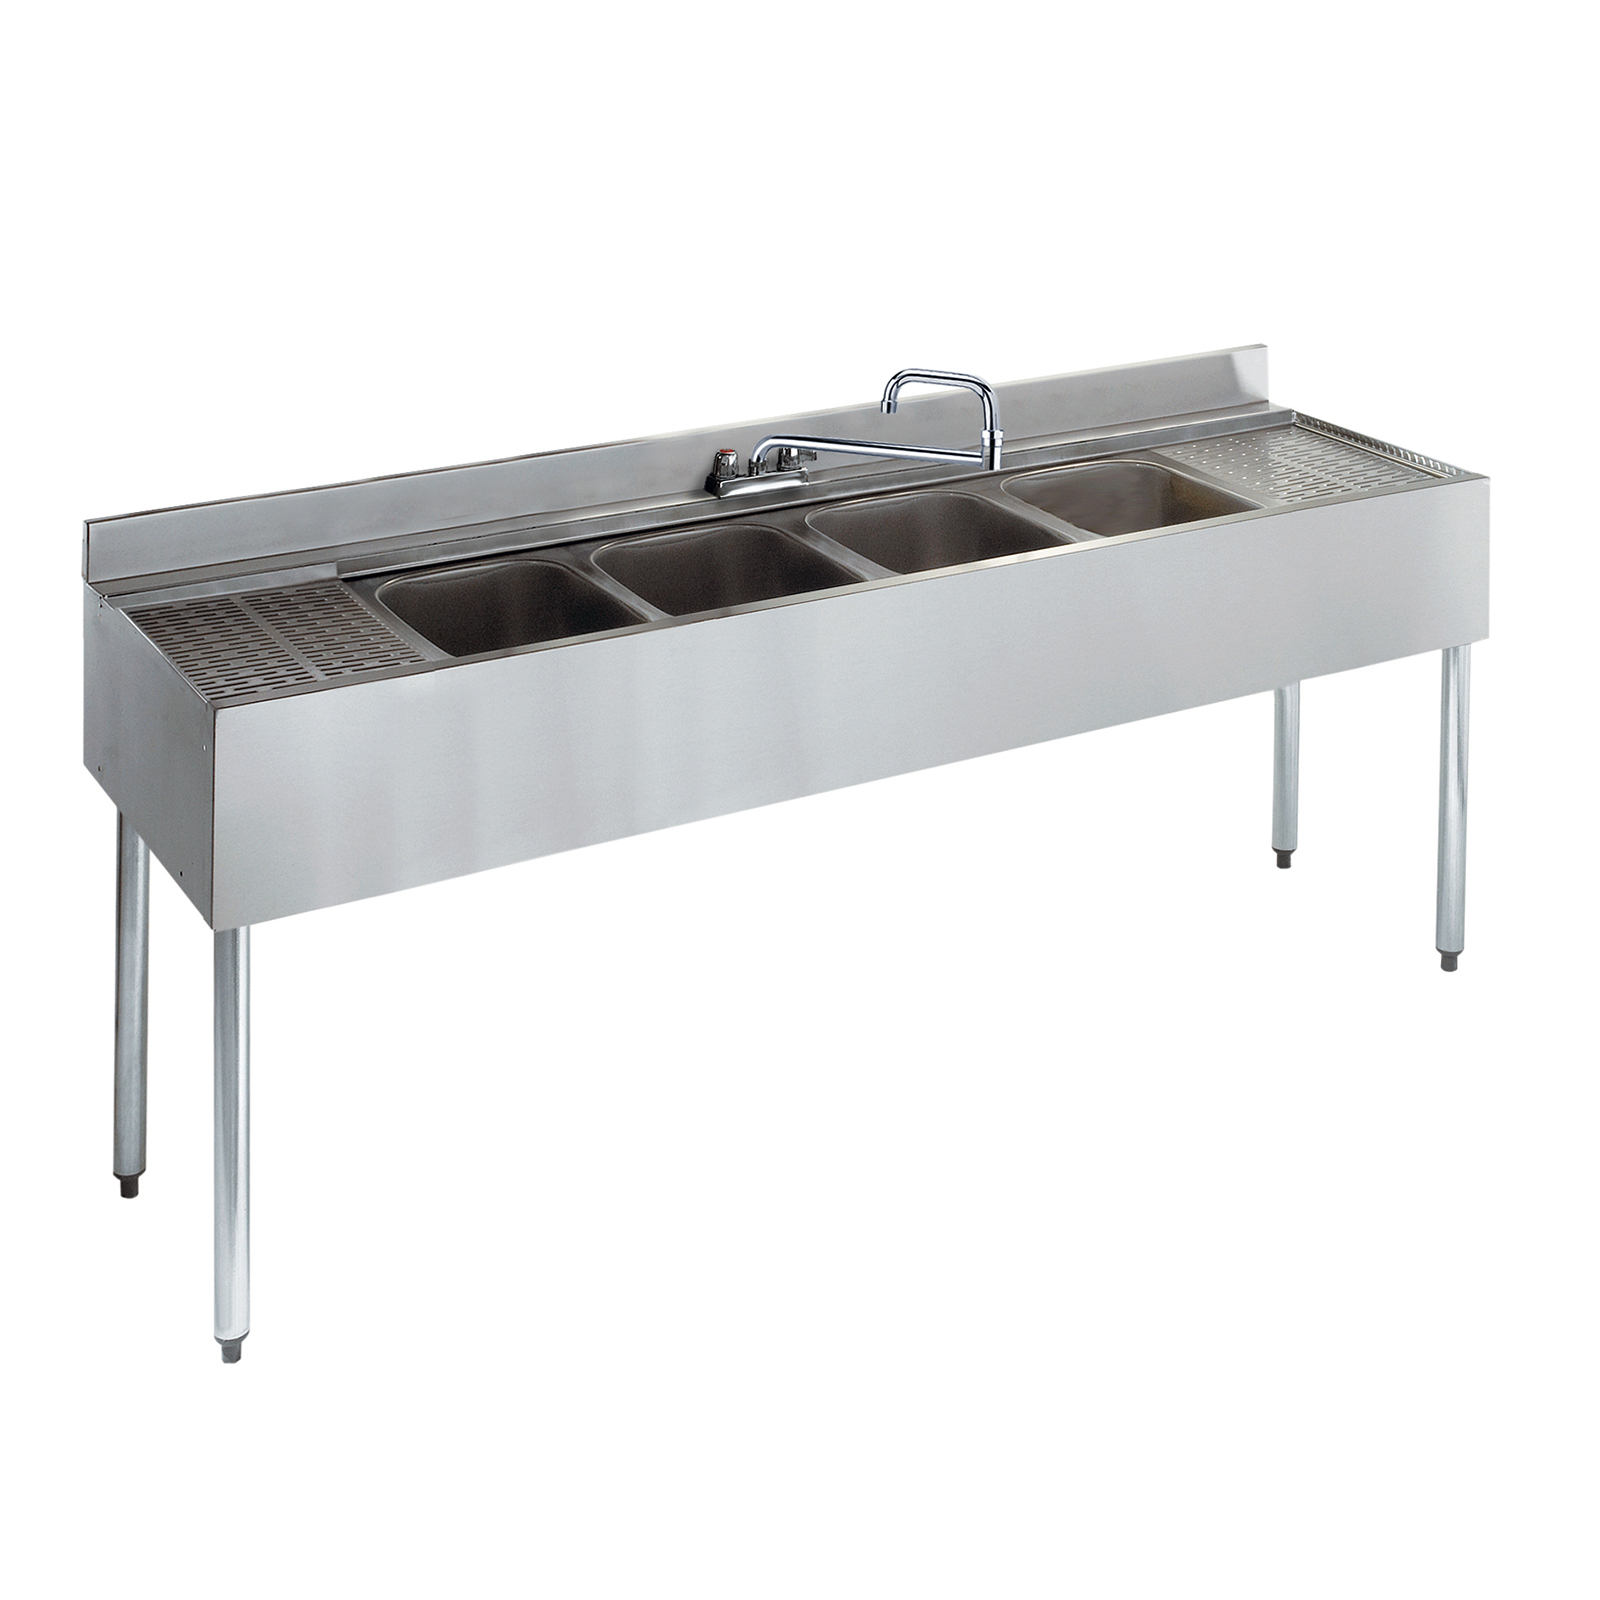 Krowne Metal KR21-74C underbar sink units